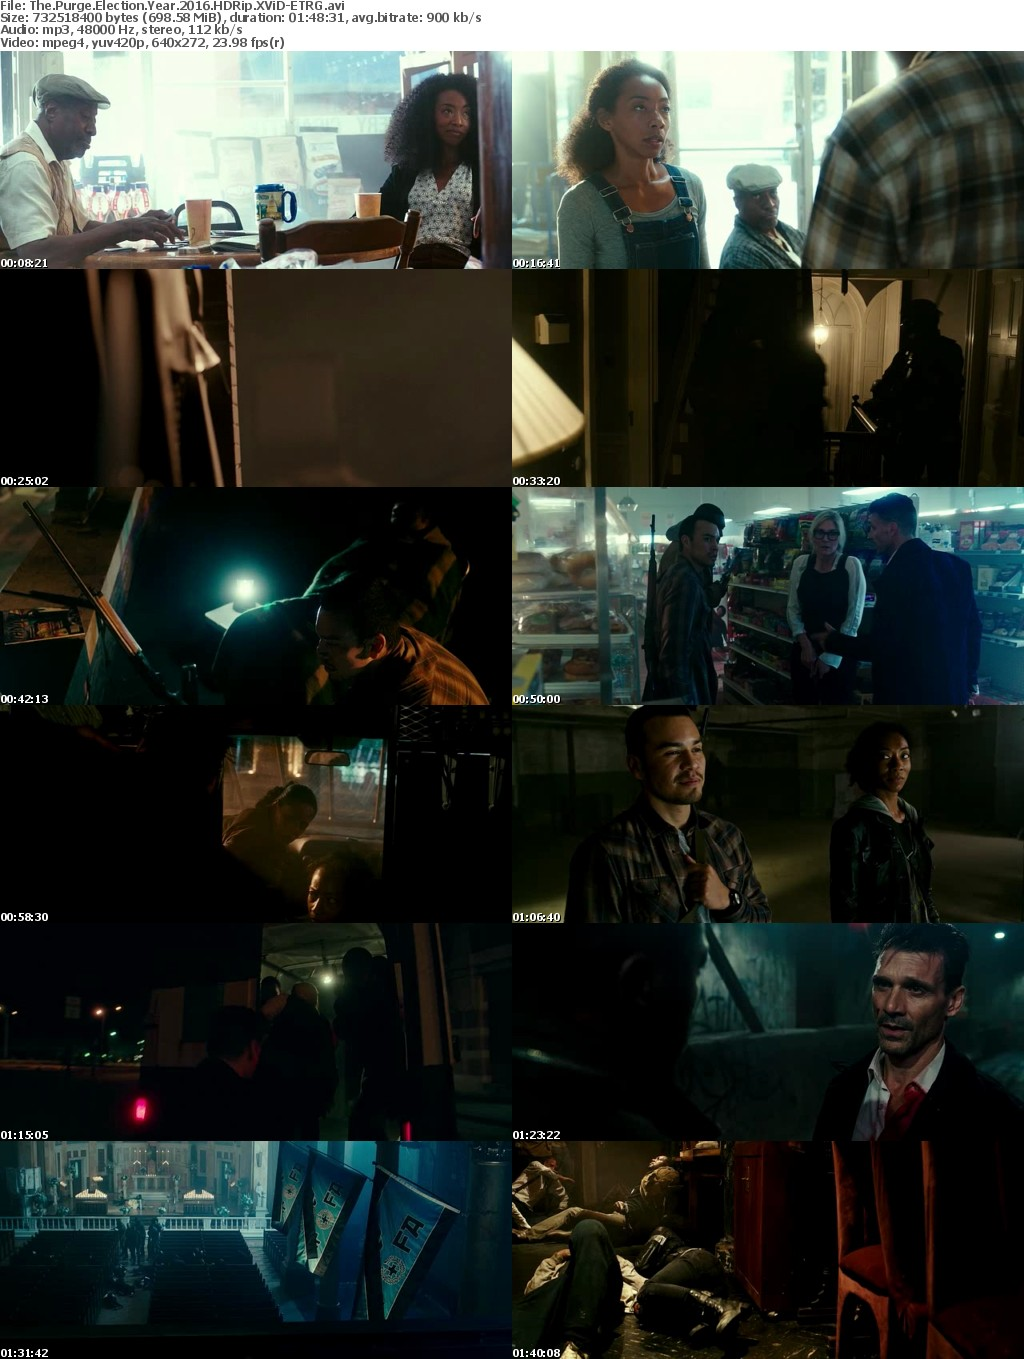 The Purge Election Year 2016 HDRip XViD ETRG